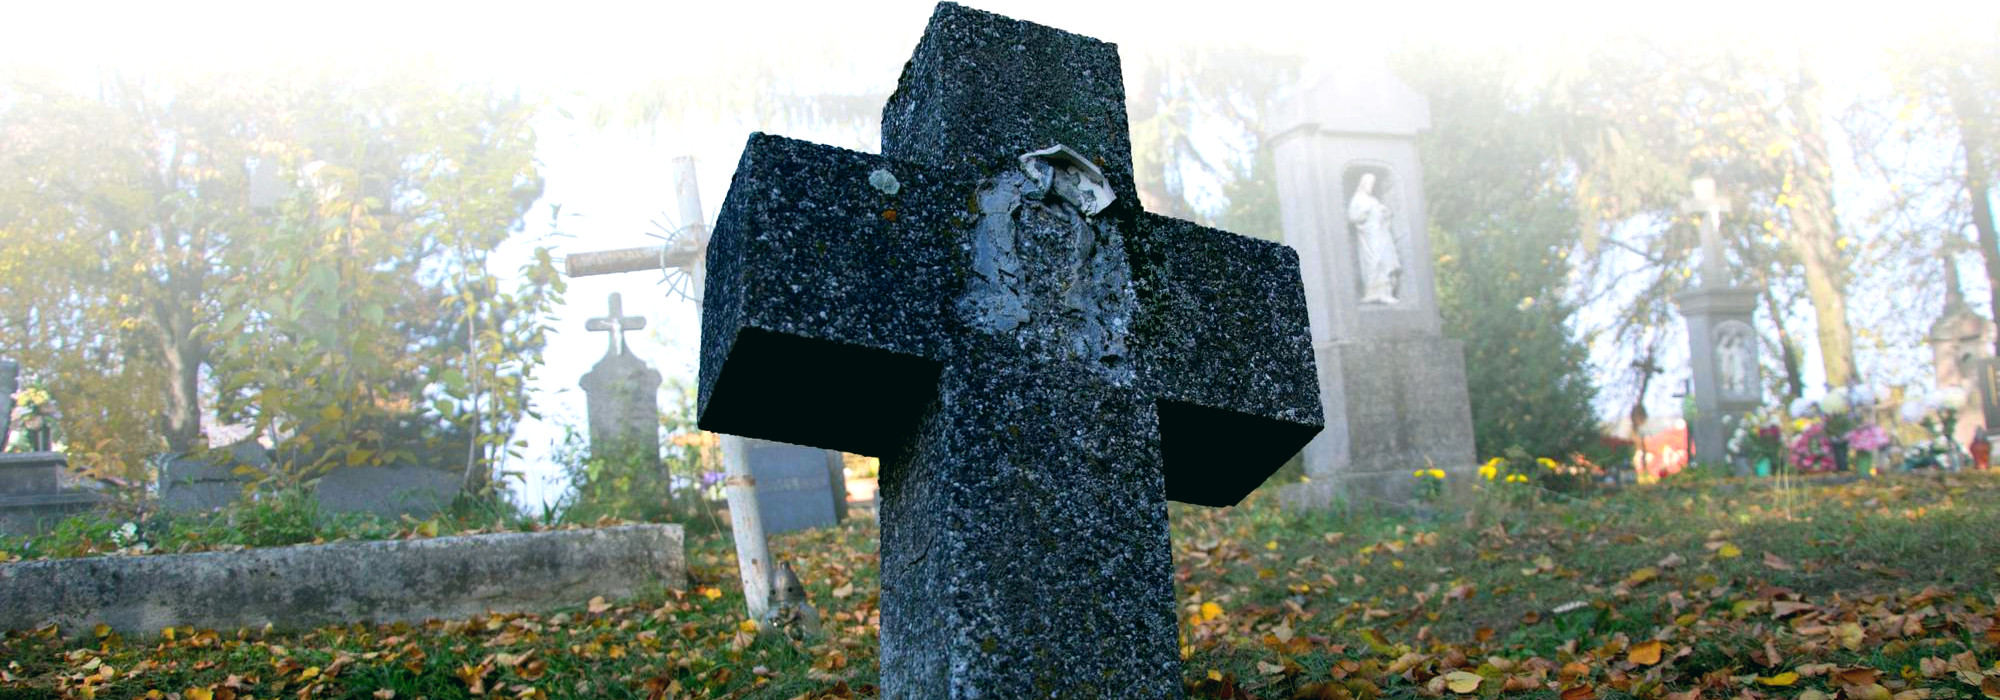 10 Ways to Revive a Dying Church | Sojourners